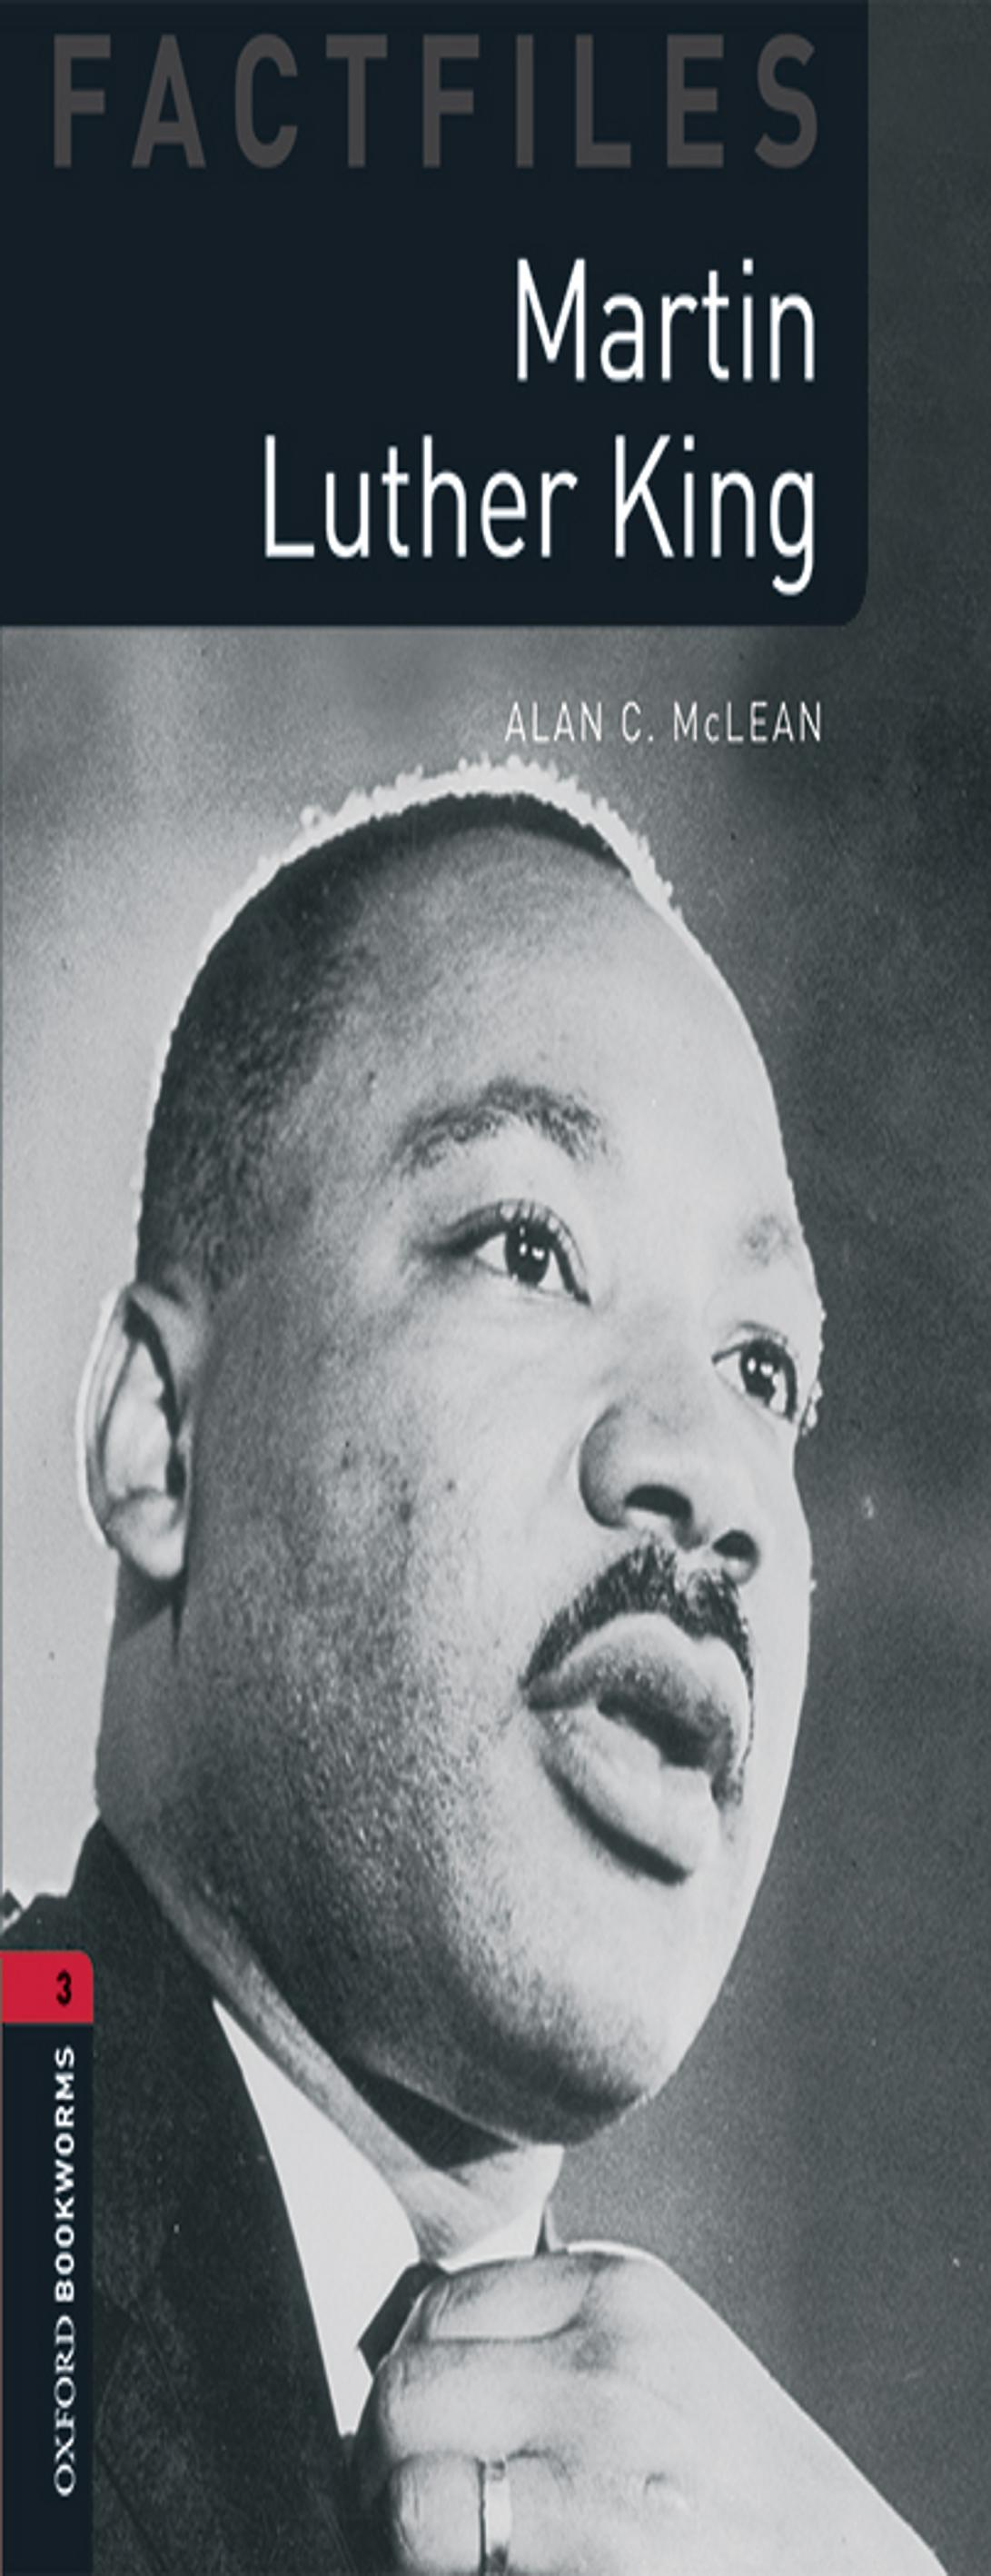 MARTIN LUTHER KING Pack MP3 - OBF 3